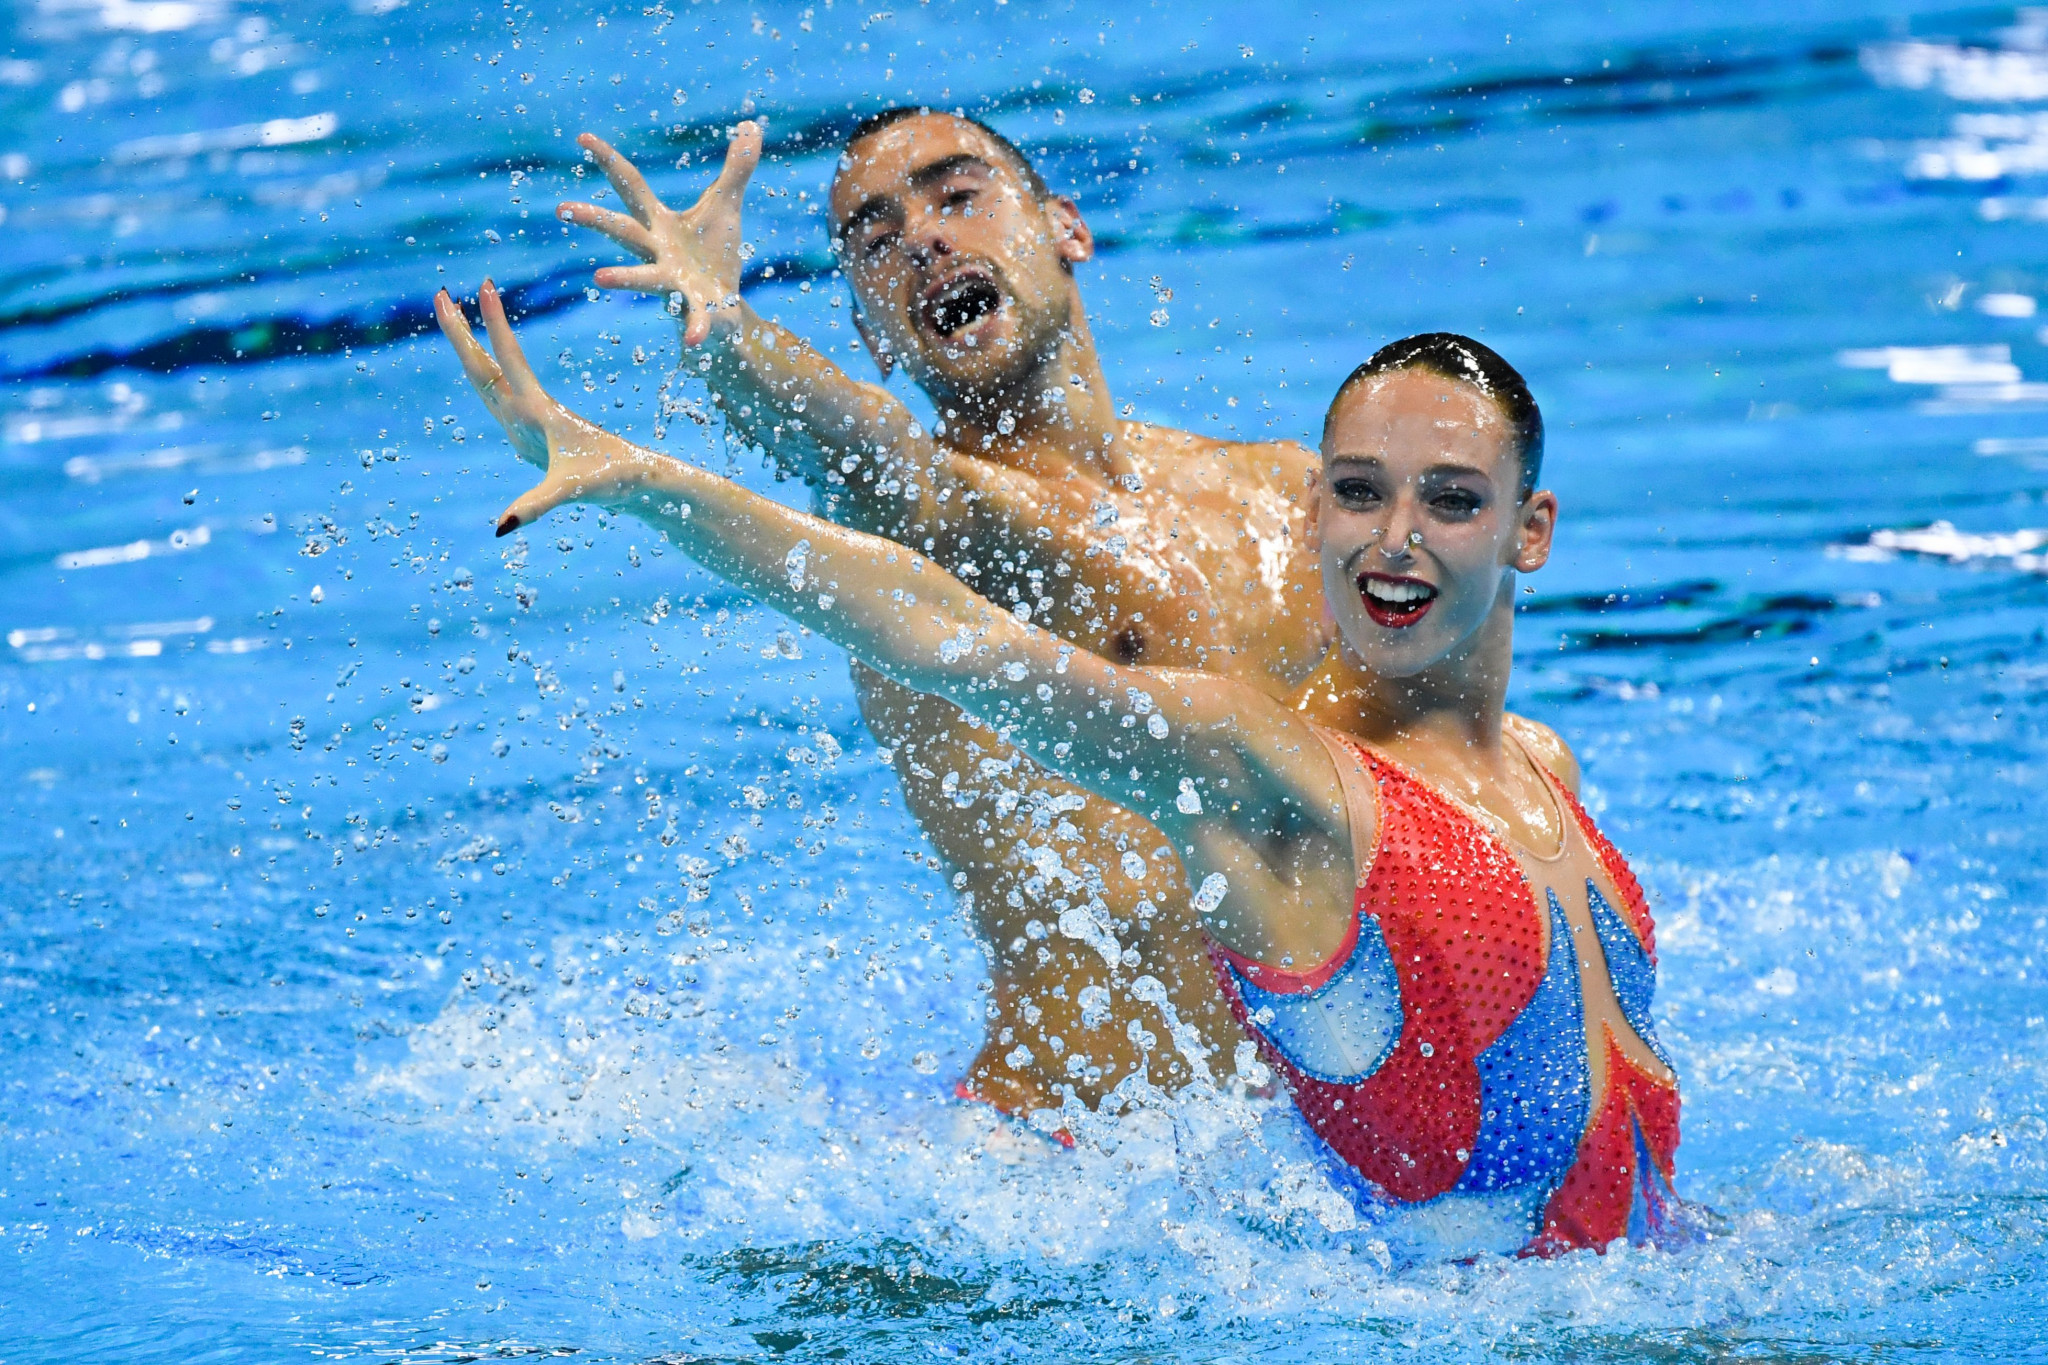 Budapest to stage first in-person leg of 2021 Artistic Swimming World Series